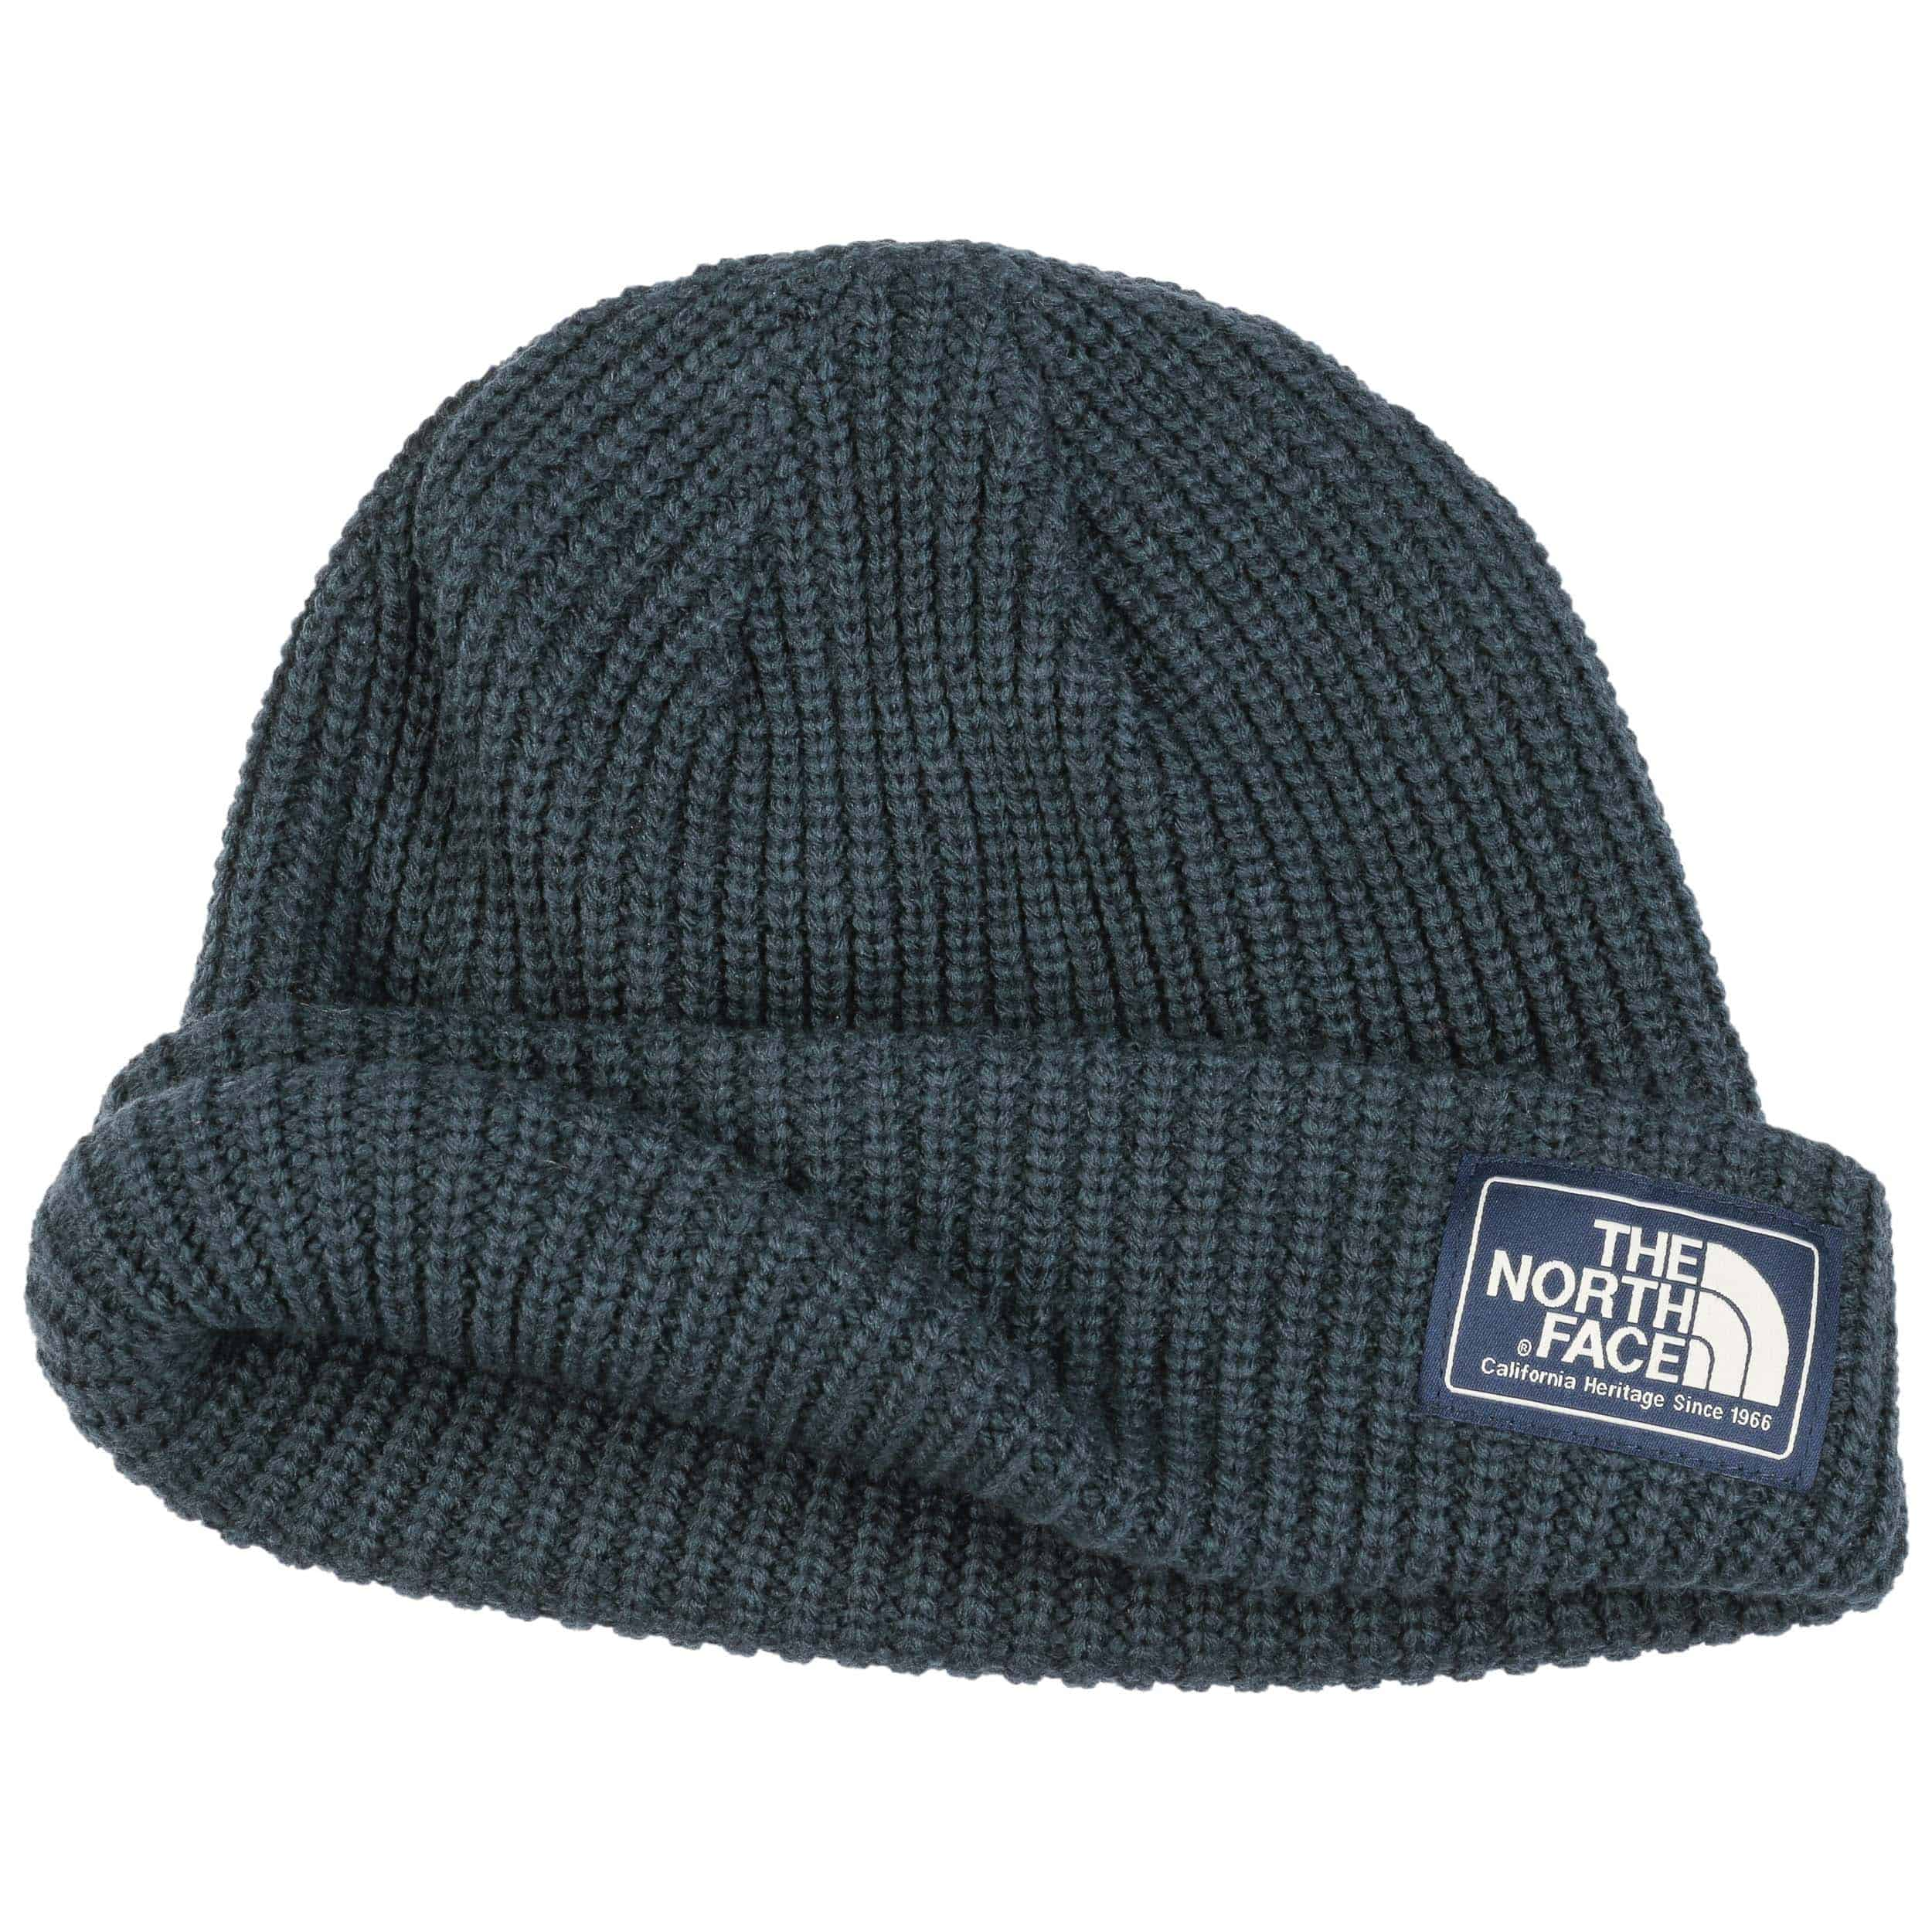 Berretto Beanie Salty Dog by The North Face - blu scuro 1 ... 13a6cb9a8ae2